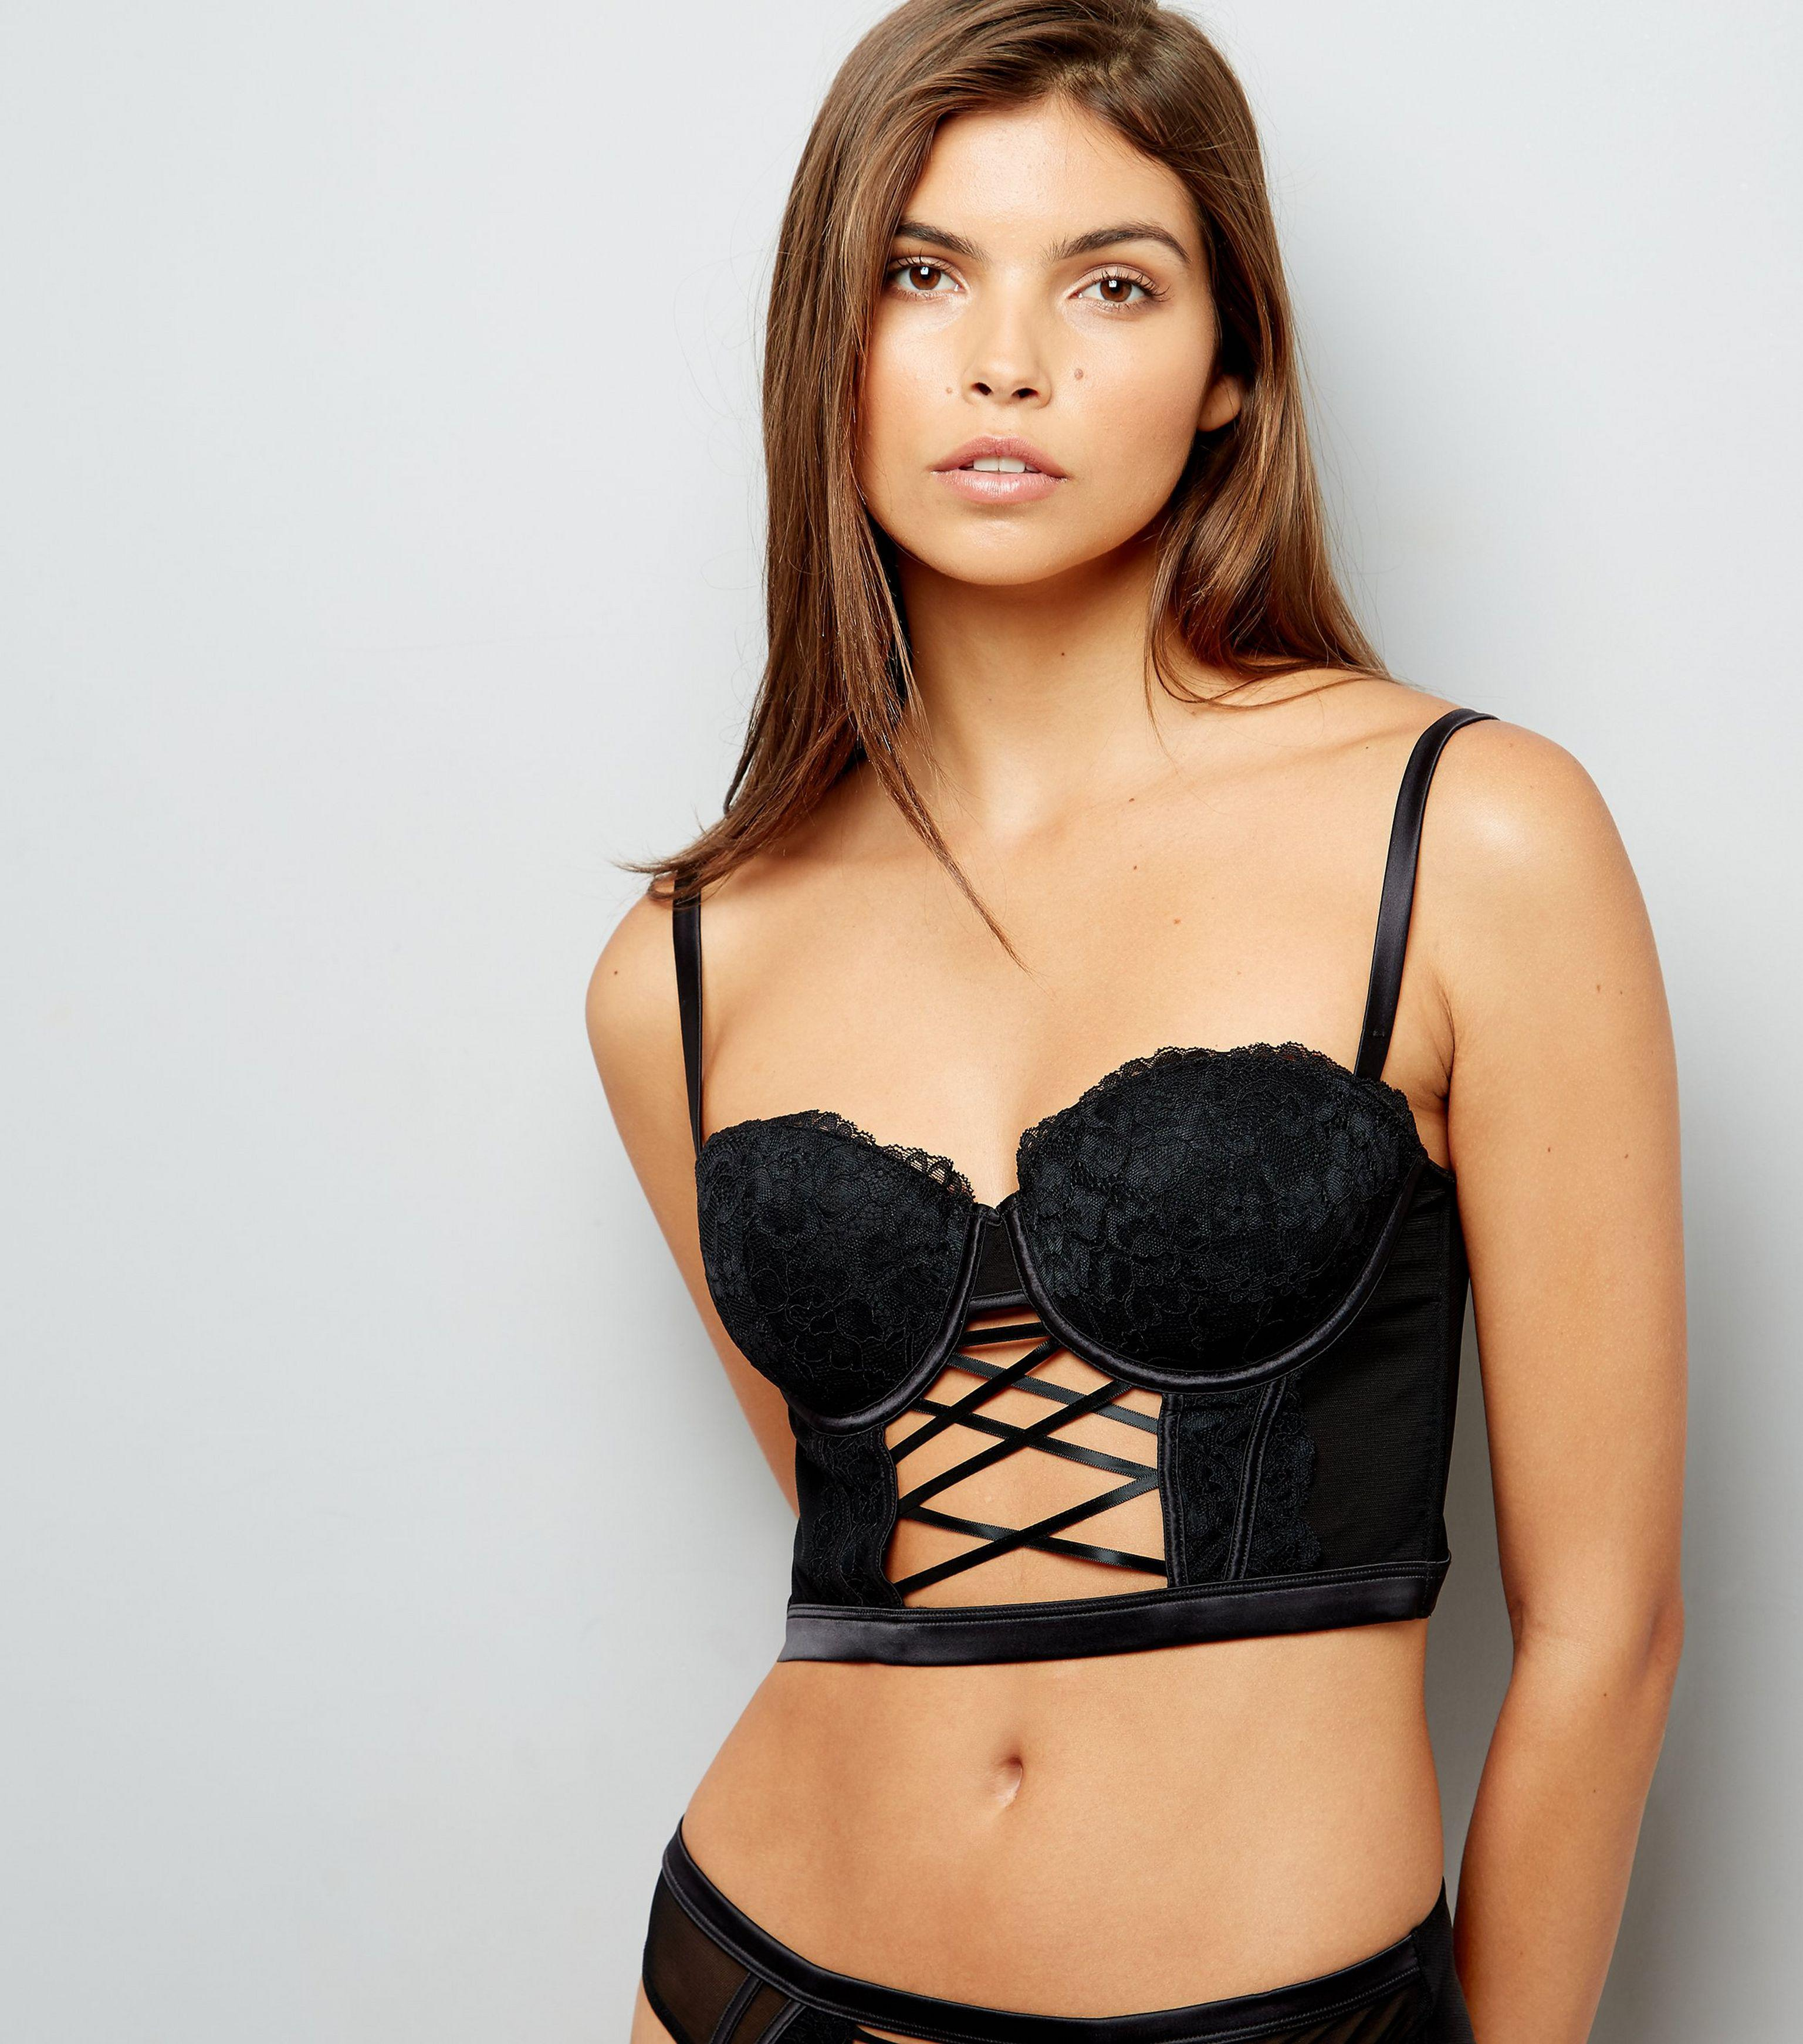 ed652cc4a639c8 New Look Black Lace Lattice Front Longline Bra in Black - Lyst